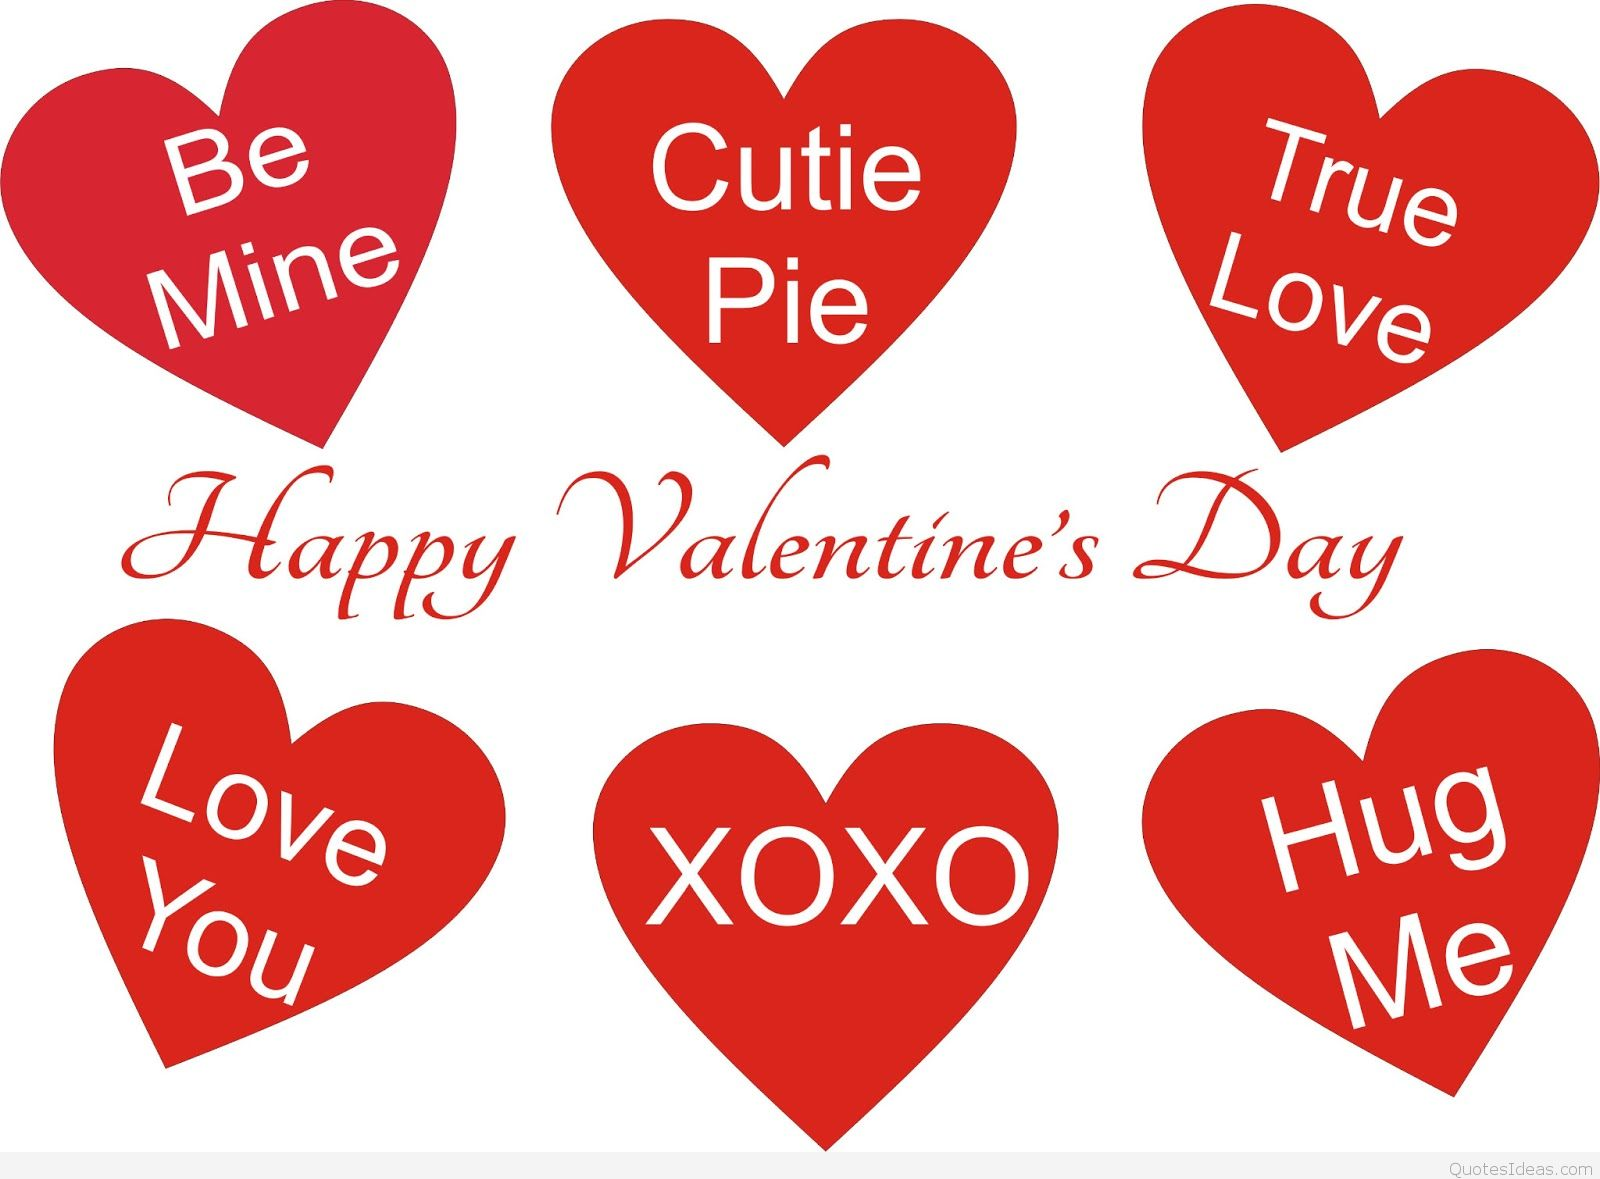 valentines day quotes for her 2017 - Happy Valentines Day Wishes